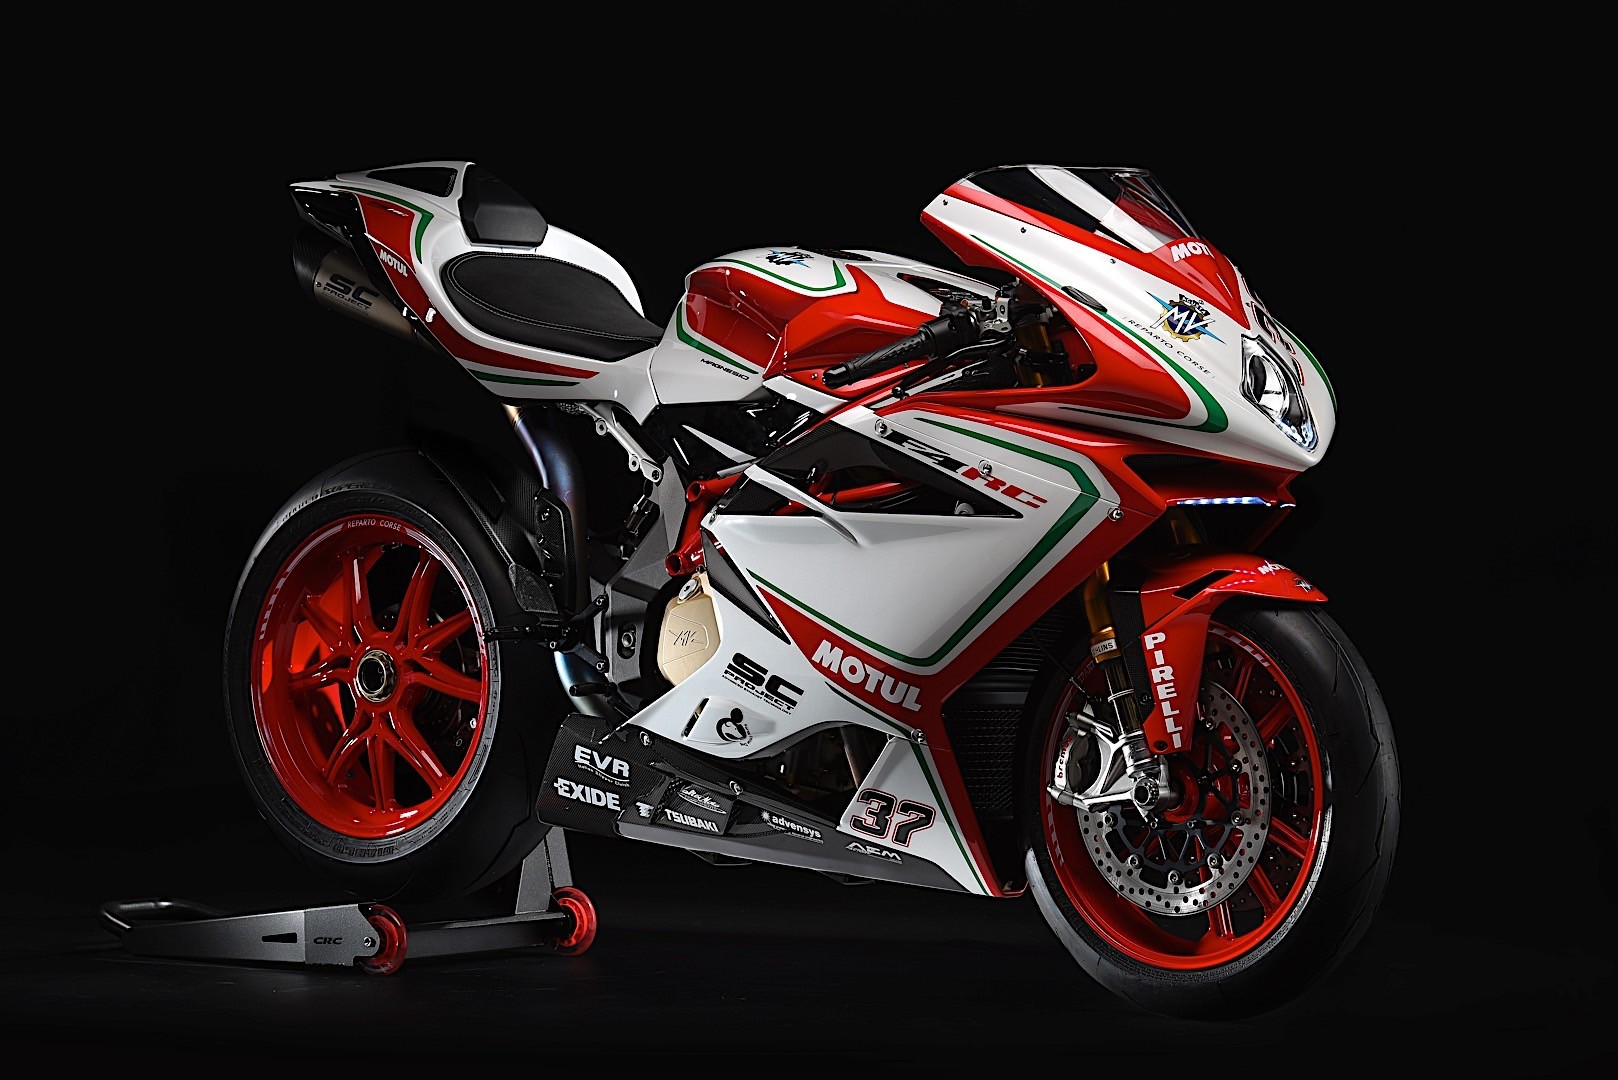 2018 mv agusta f4 rc is one of the most exclusive bikes around 4